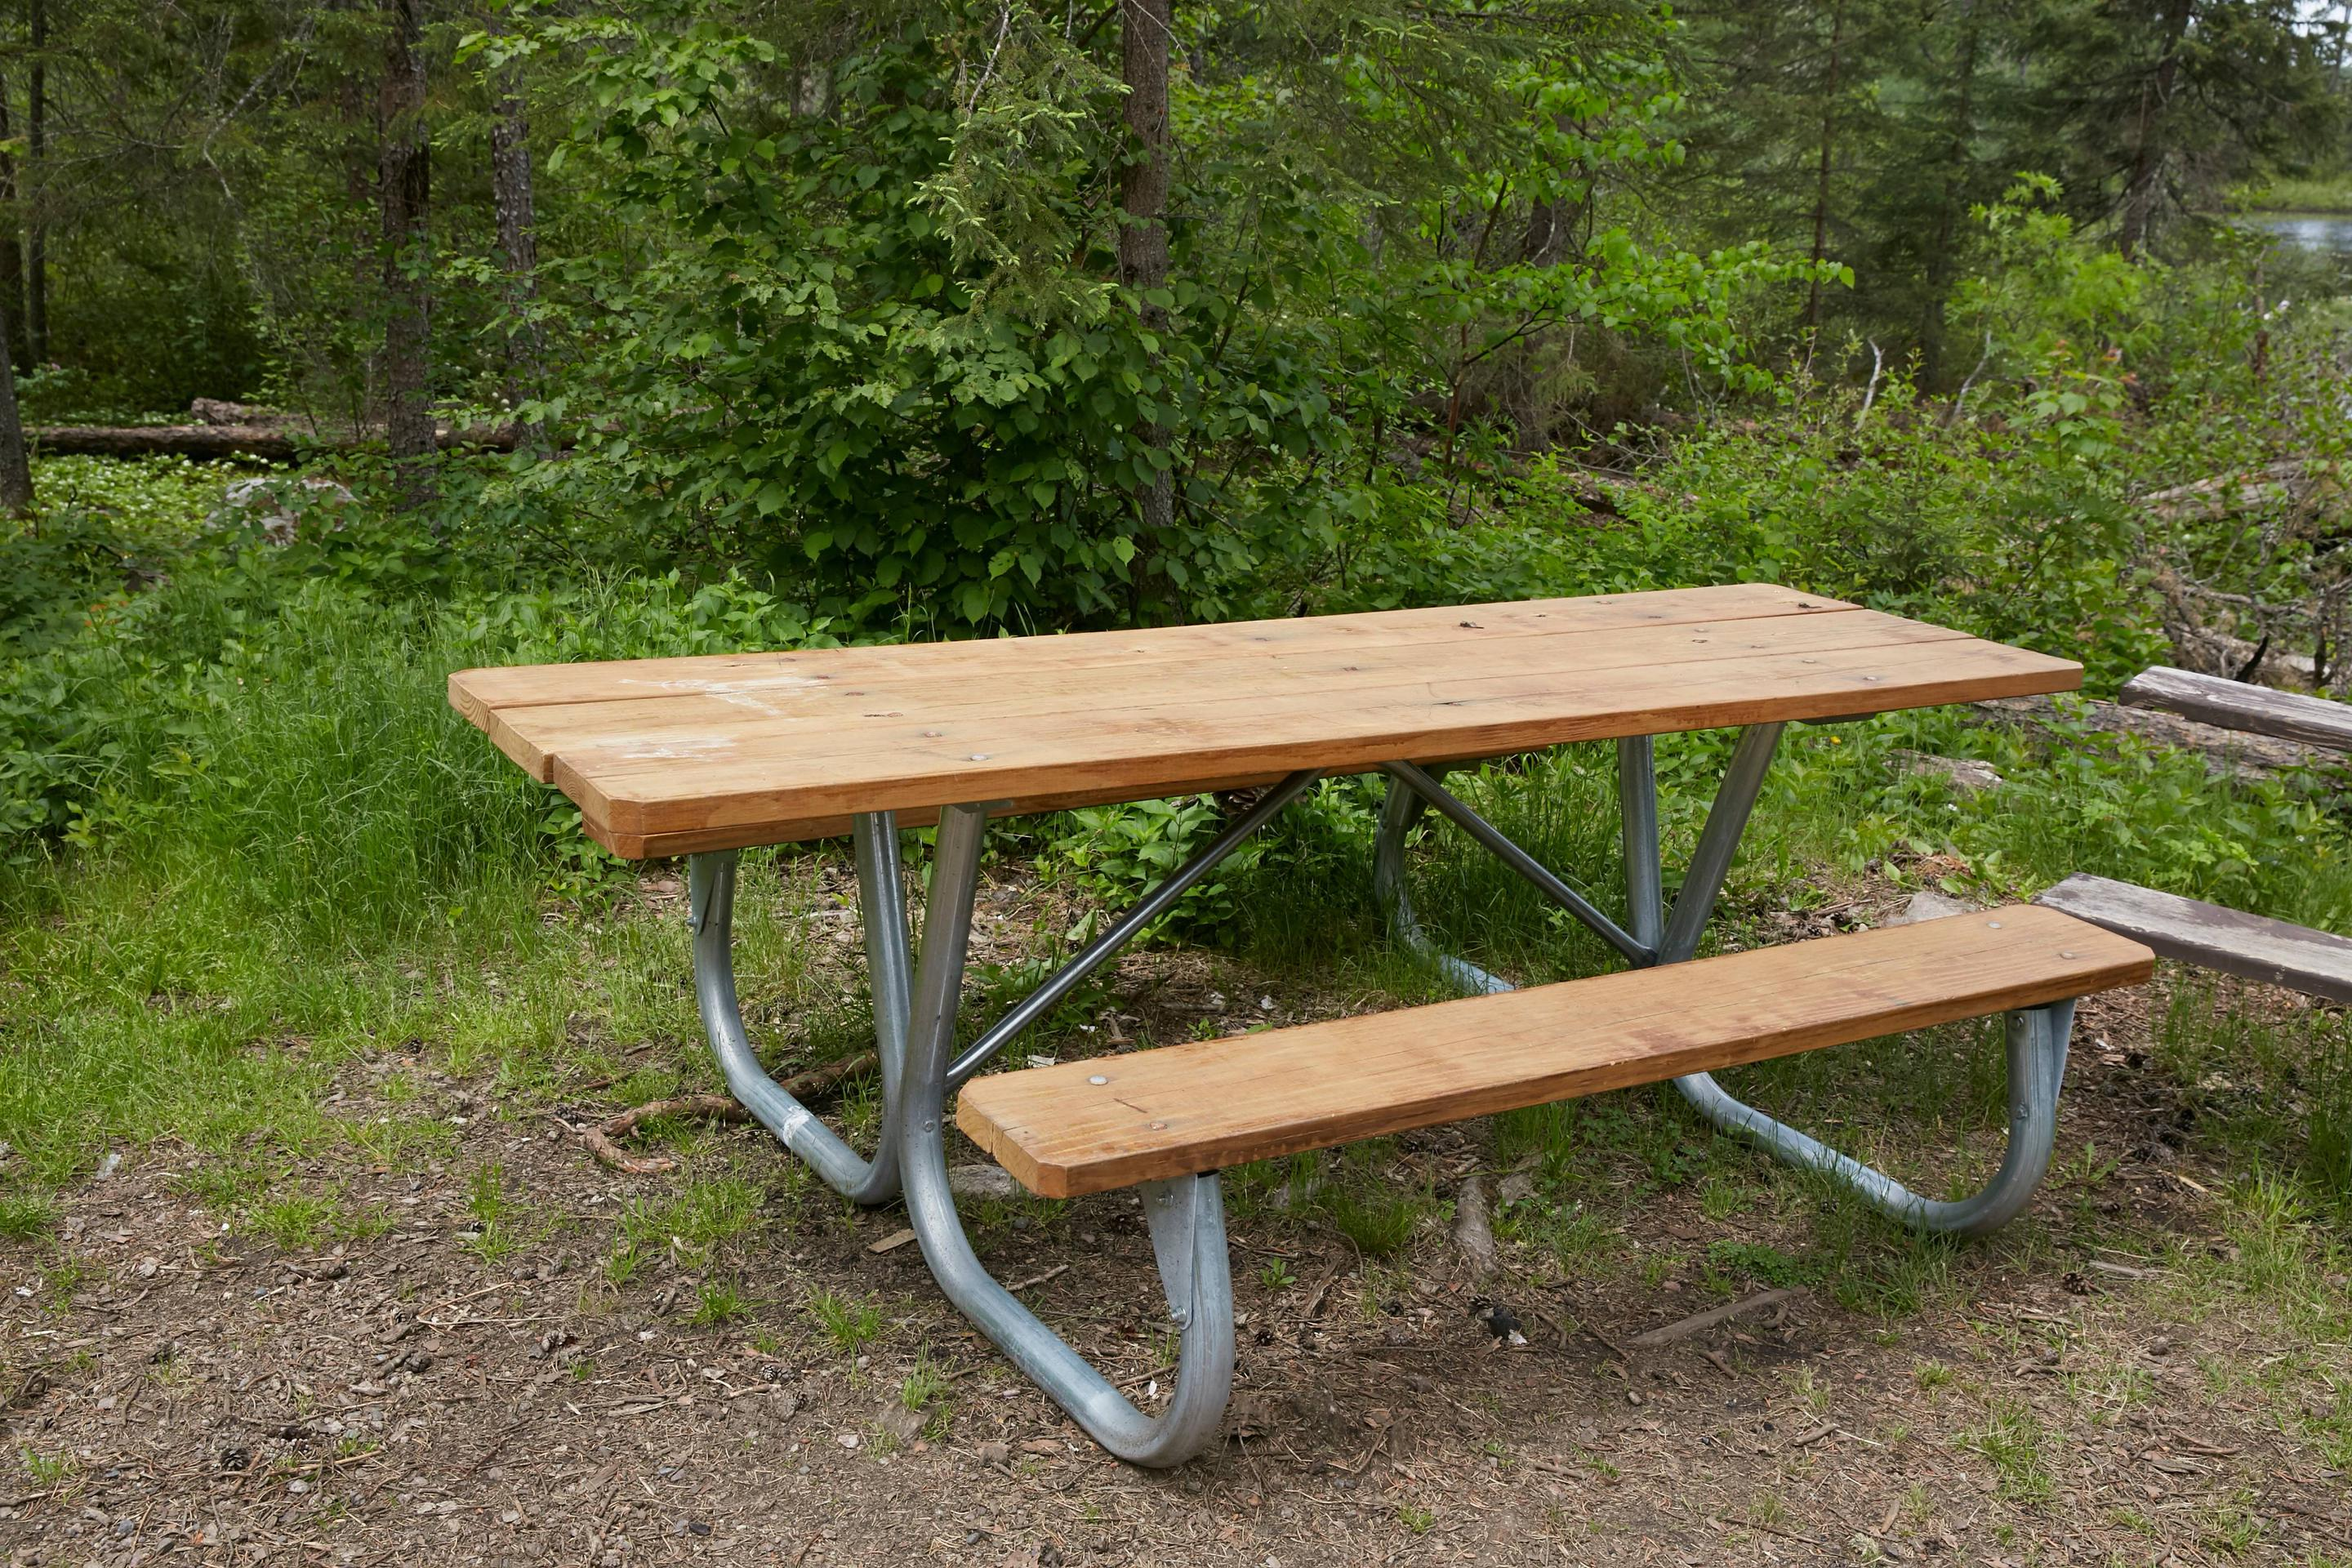 Picnic TablePicnic table